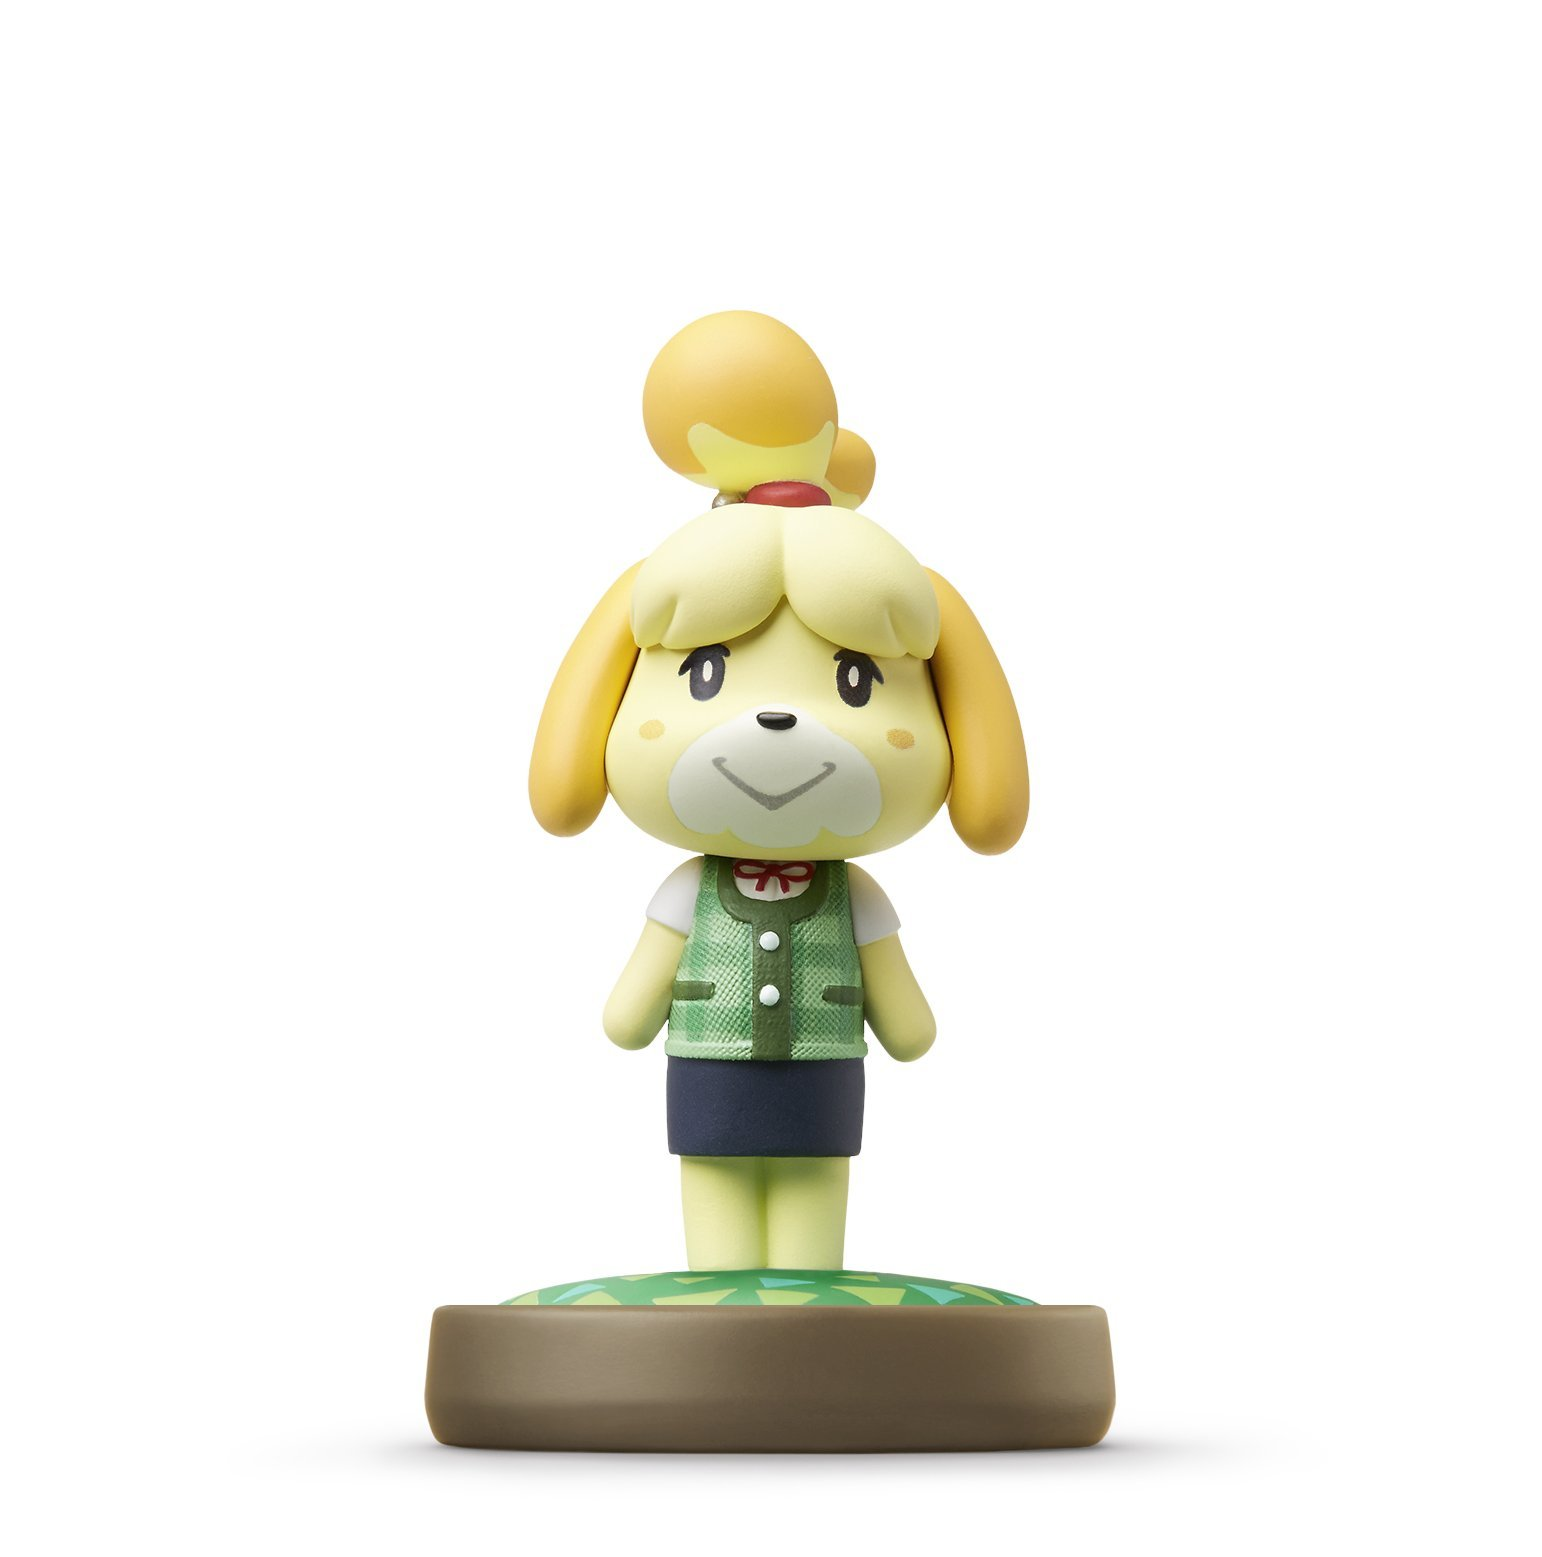 Nintendo Isabelle Summer Outfit amiibo - Nintendo Wii U by Nintendo